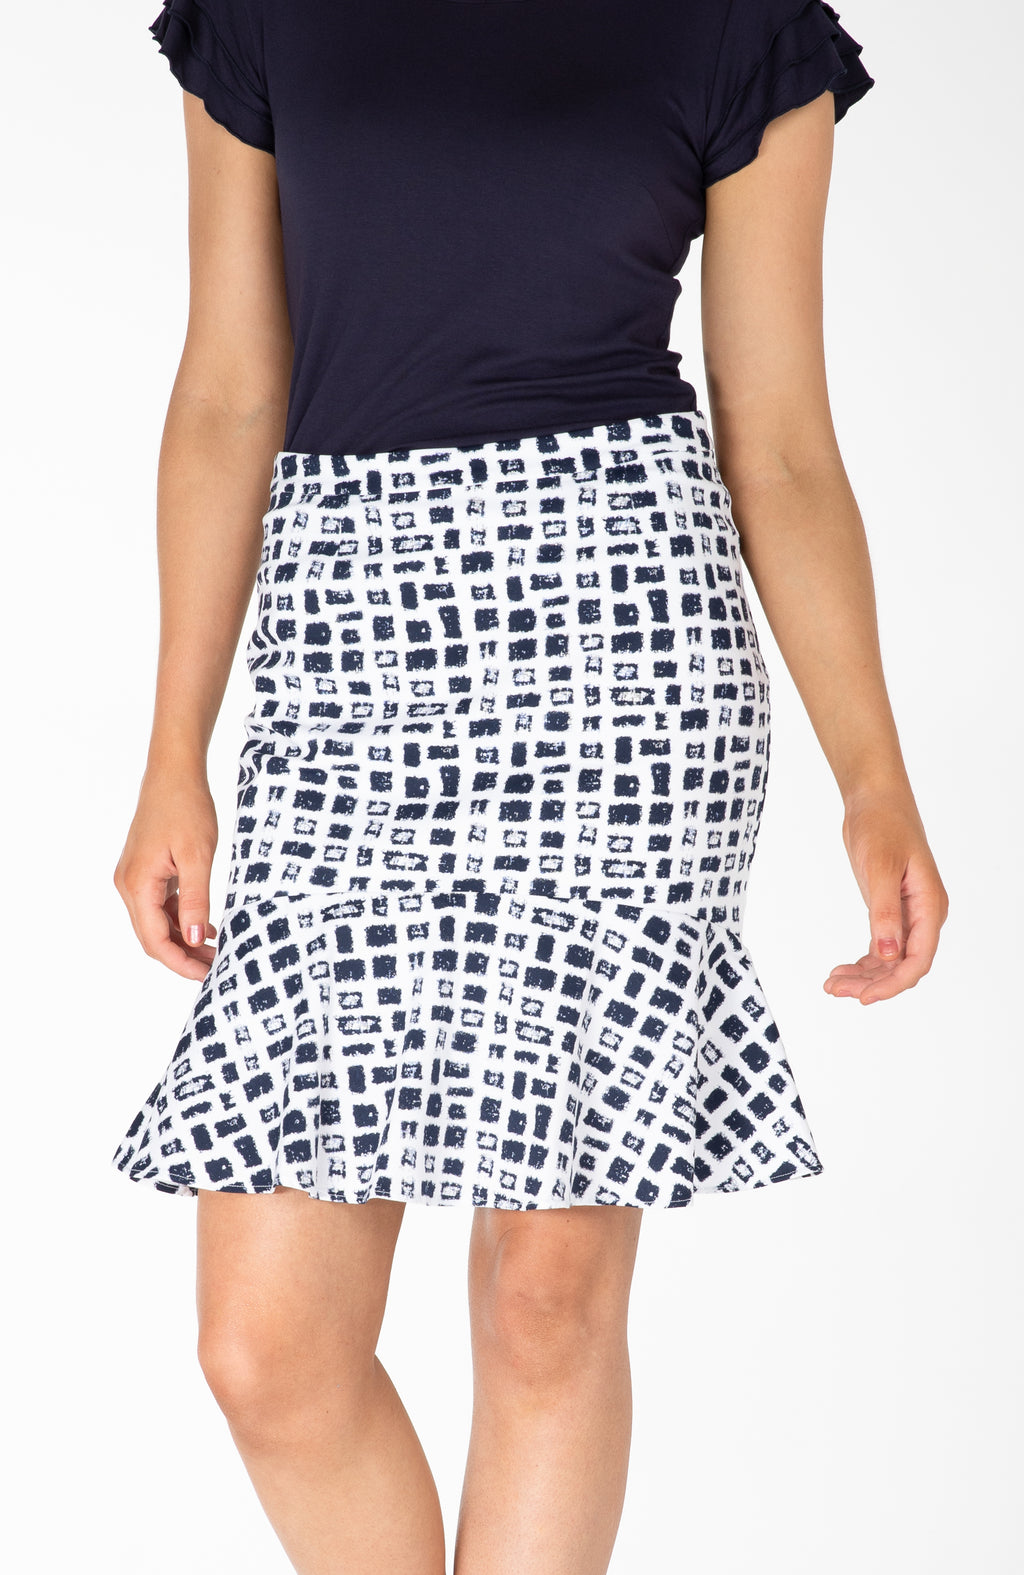 Frilled Pencil Skirt | Navy and White | Fun and Feminine Women's Fashion Online Australia